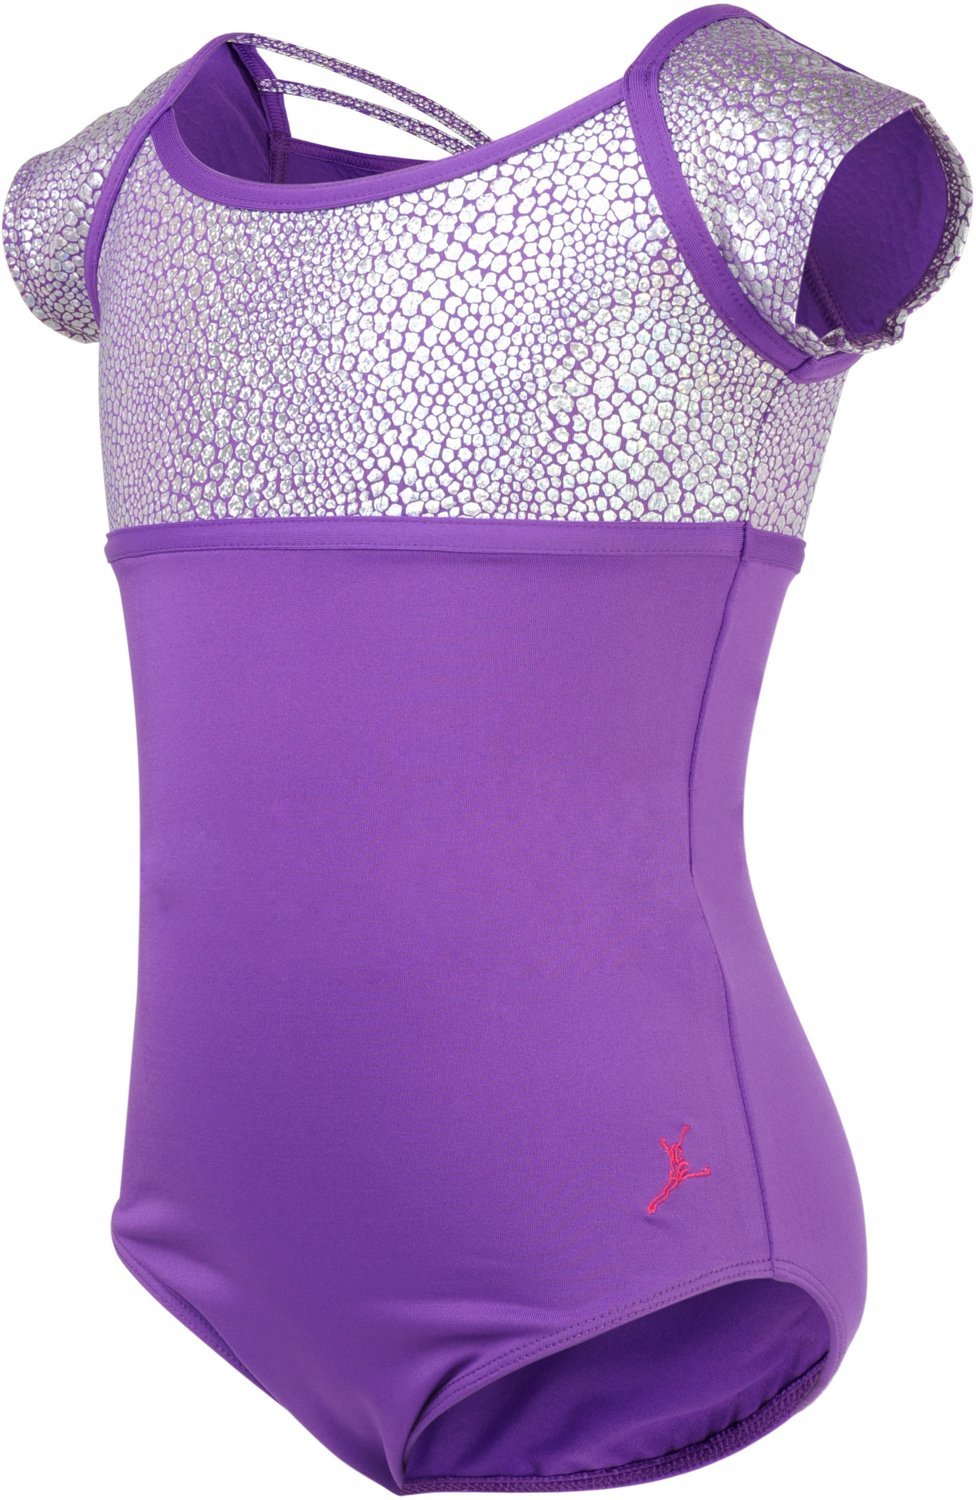 27030cebe58d Girls Leotards